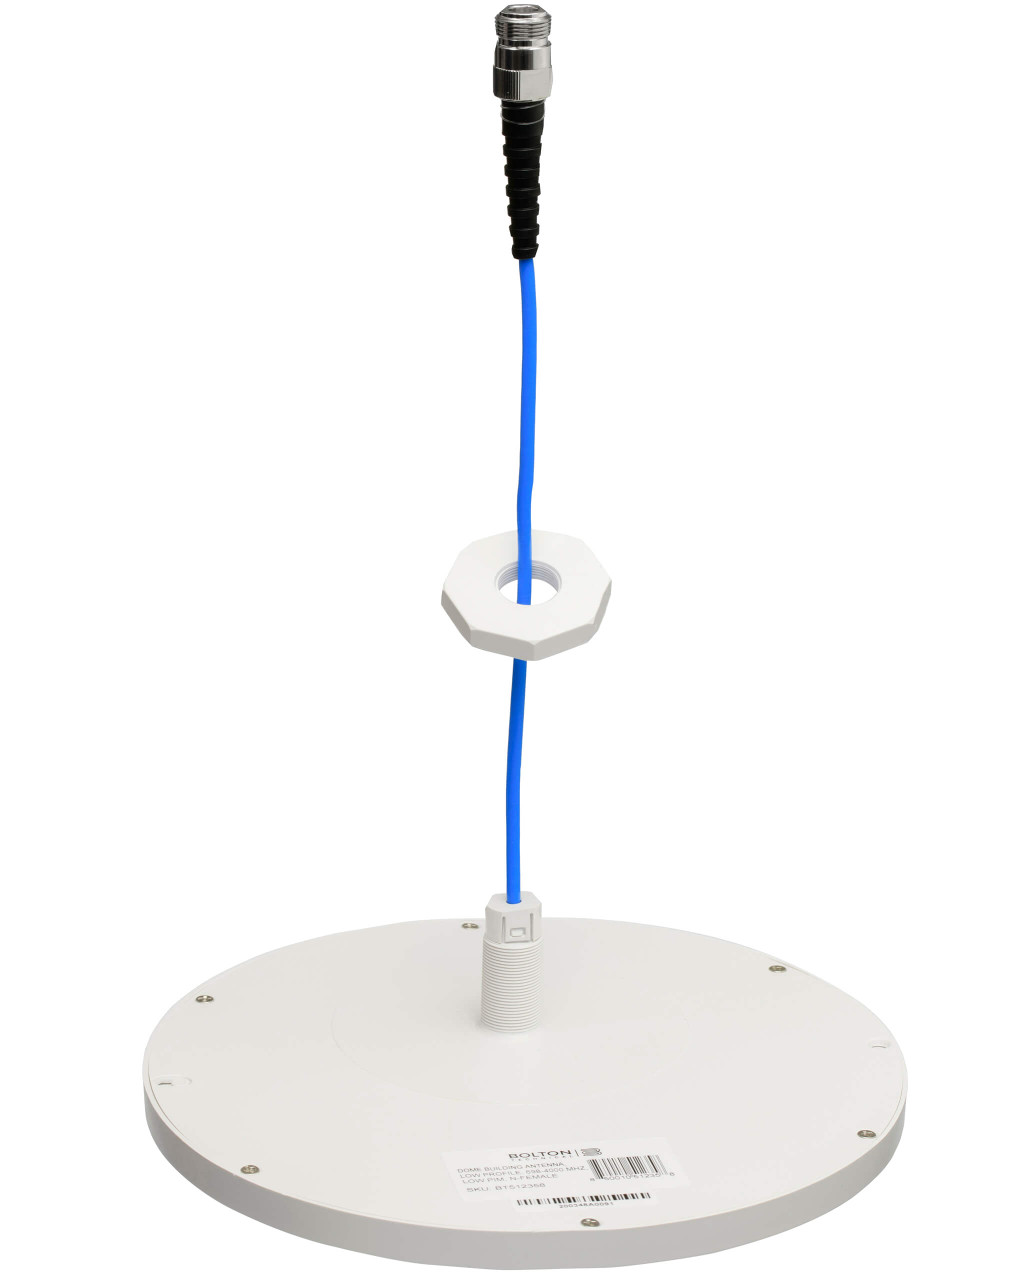 The Rondo 5G - Low Profile Dome Antenna top view